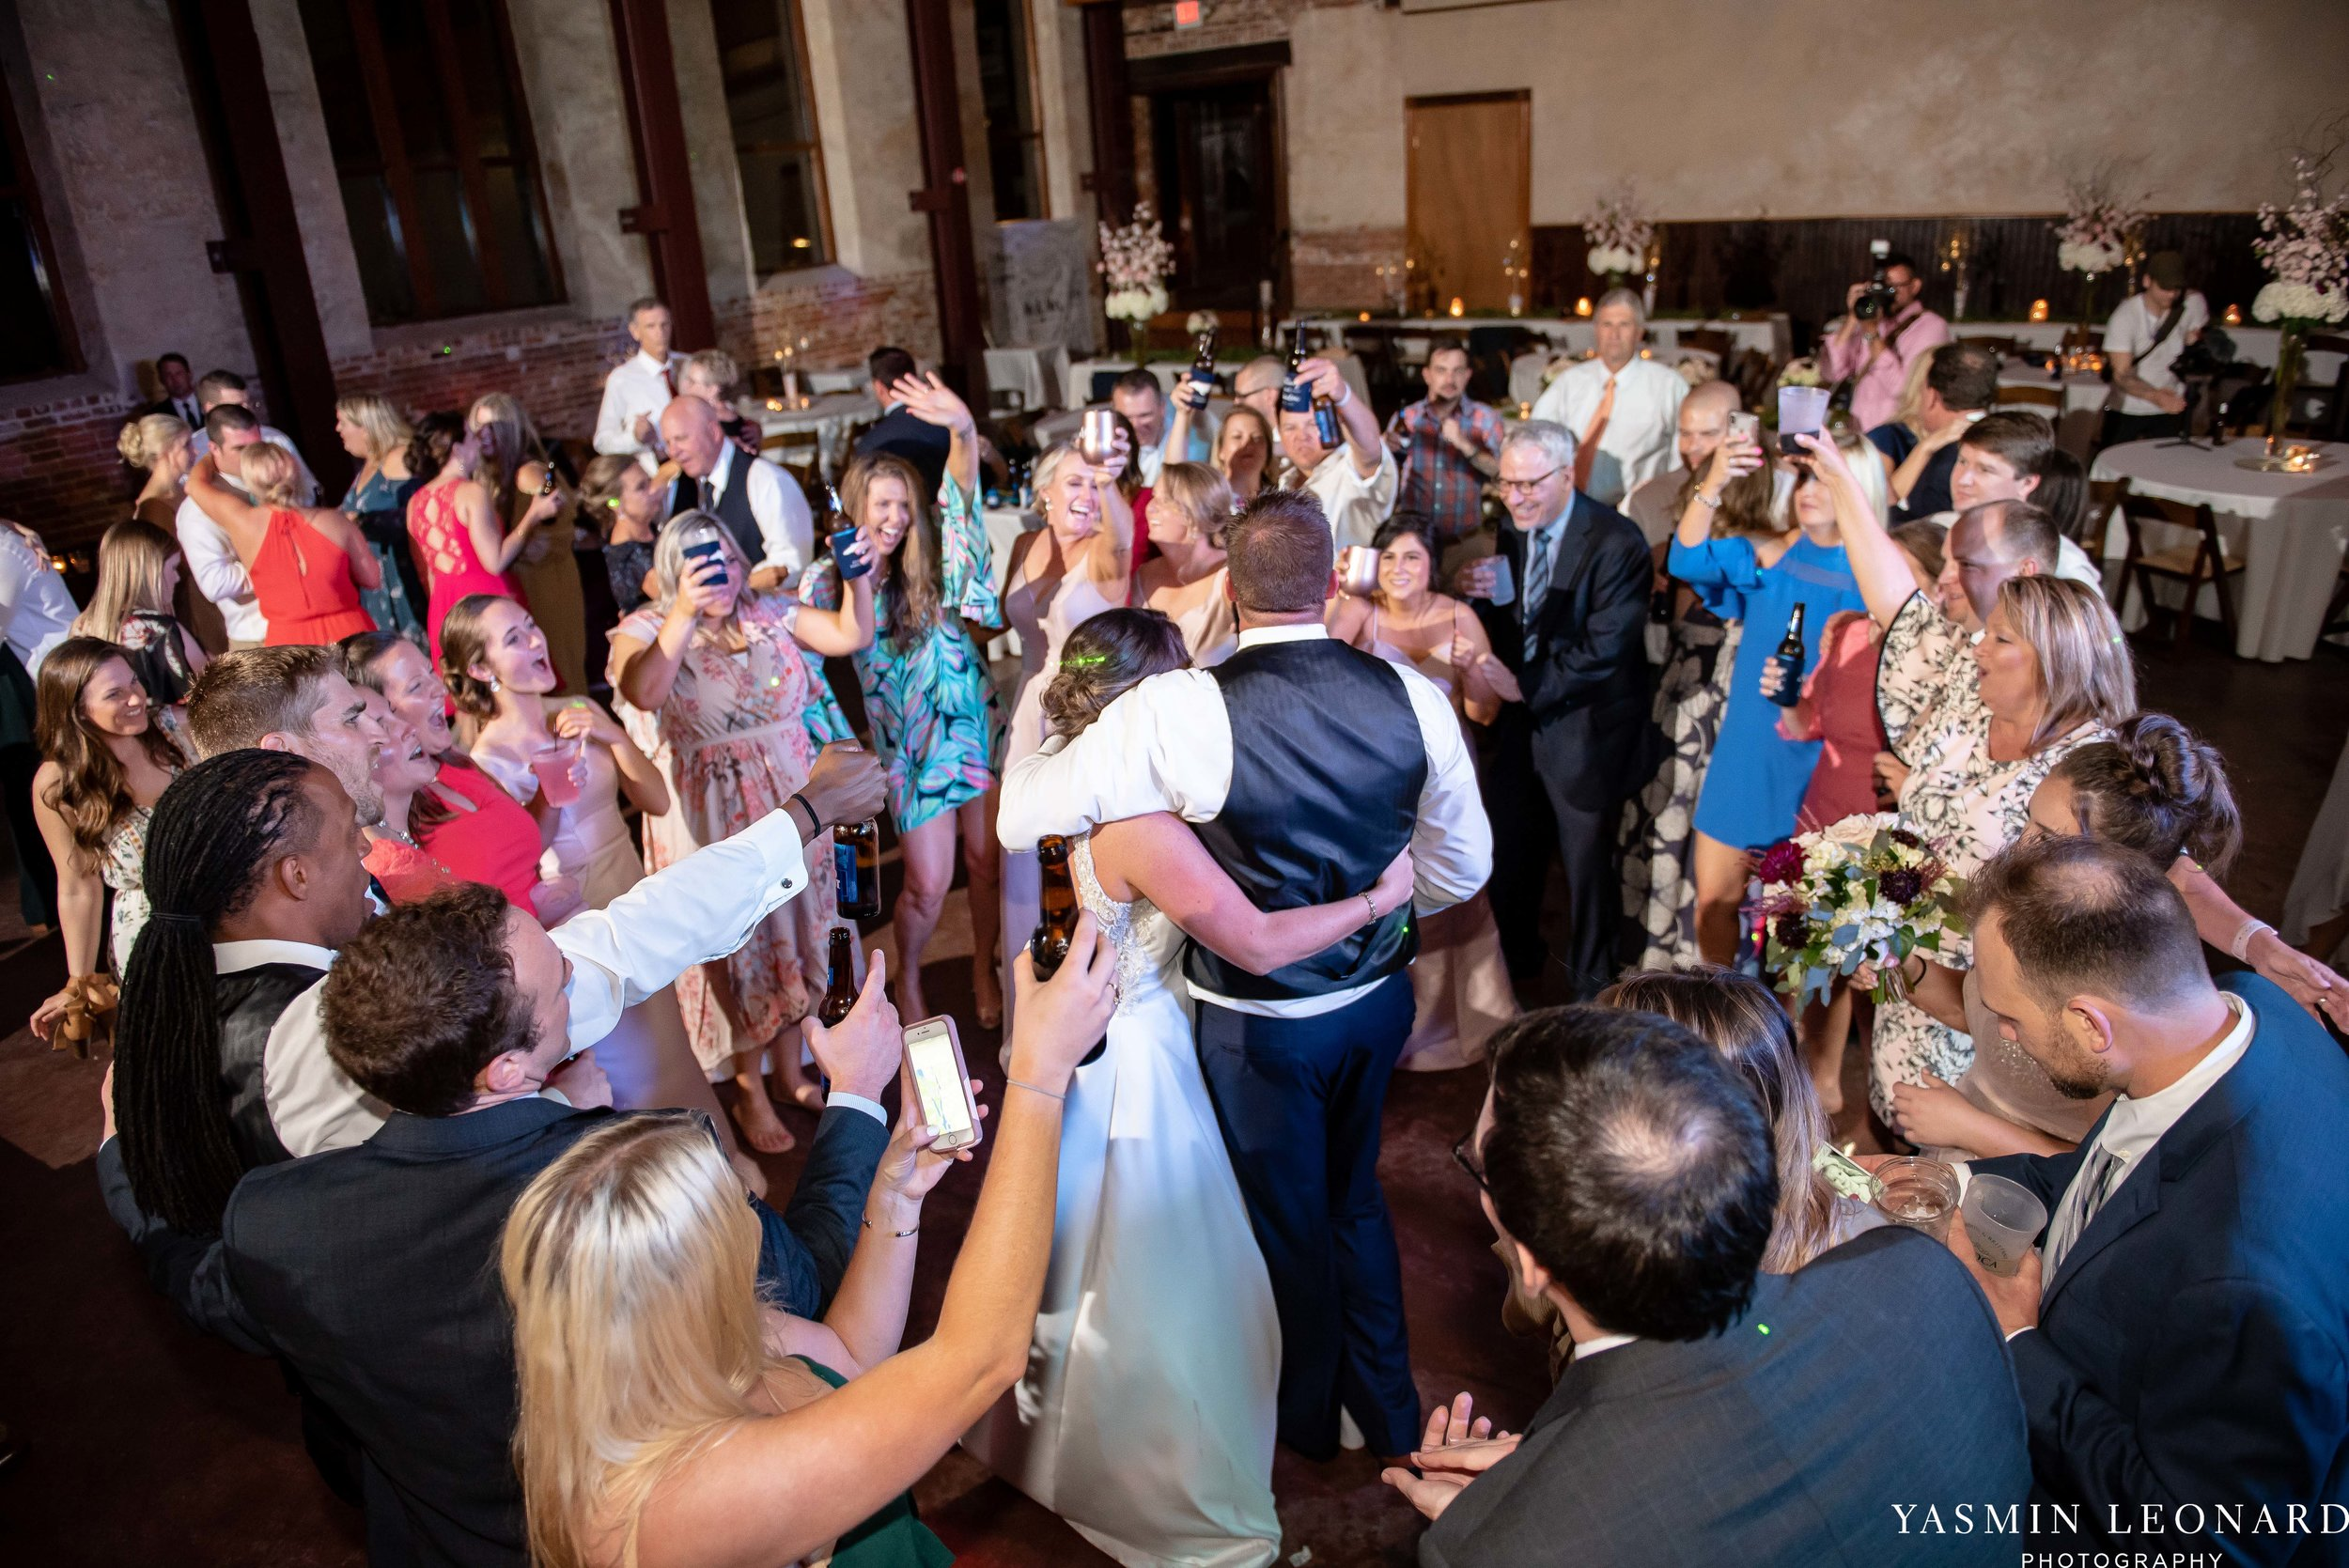 Wilmington Weddings - Brooklyn Arts Center - Downtown Wilmington Weddings - NC Beach Weddings - NC Wedding Photographer - NC Weddings - Wilmington Wedding Venues - Yasmin Leonard Photography-77.jpg